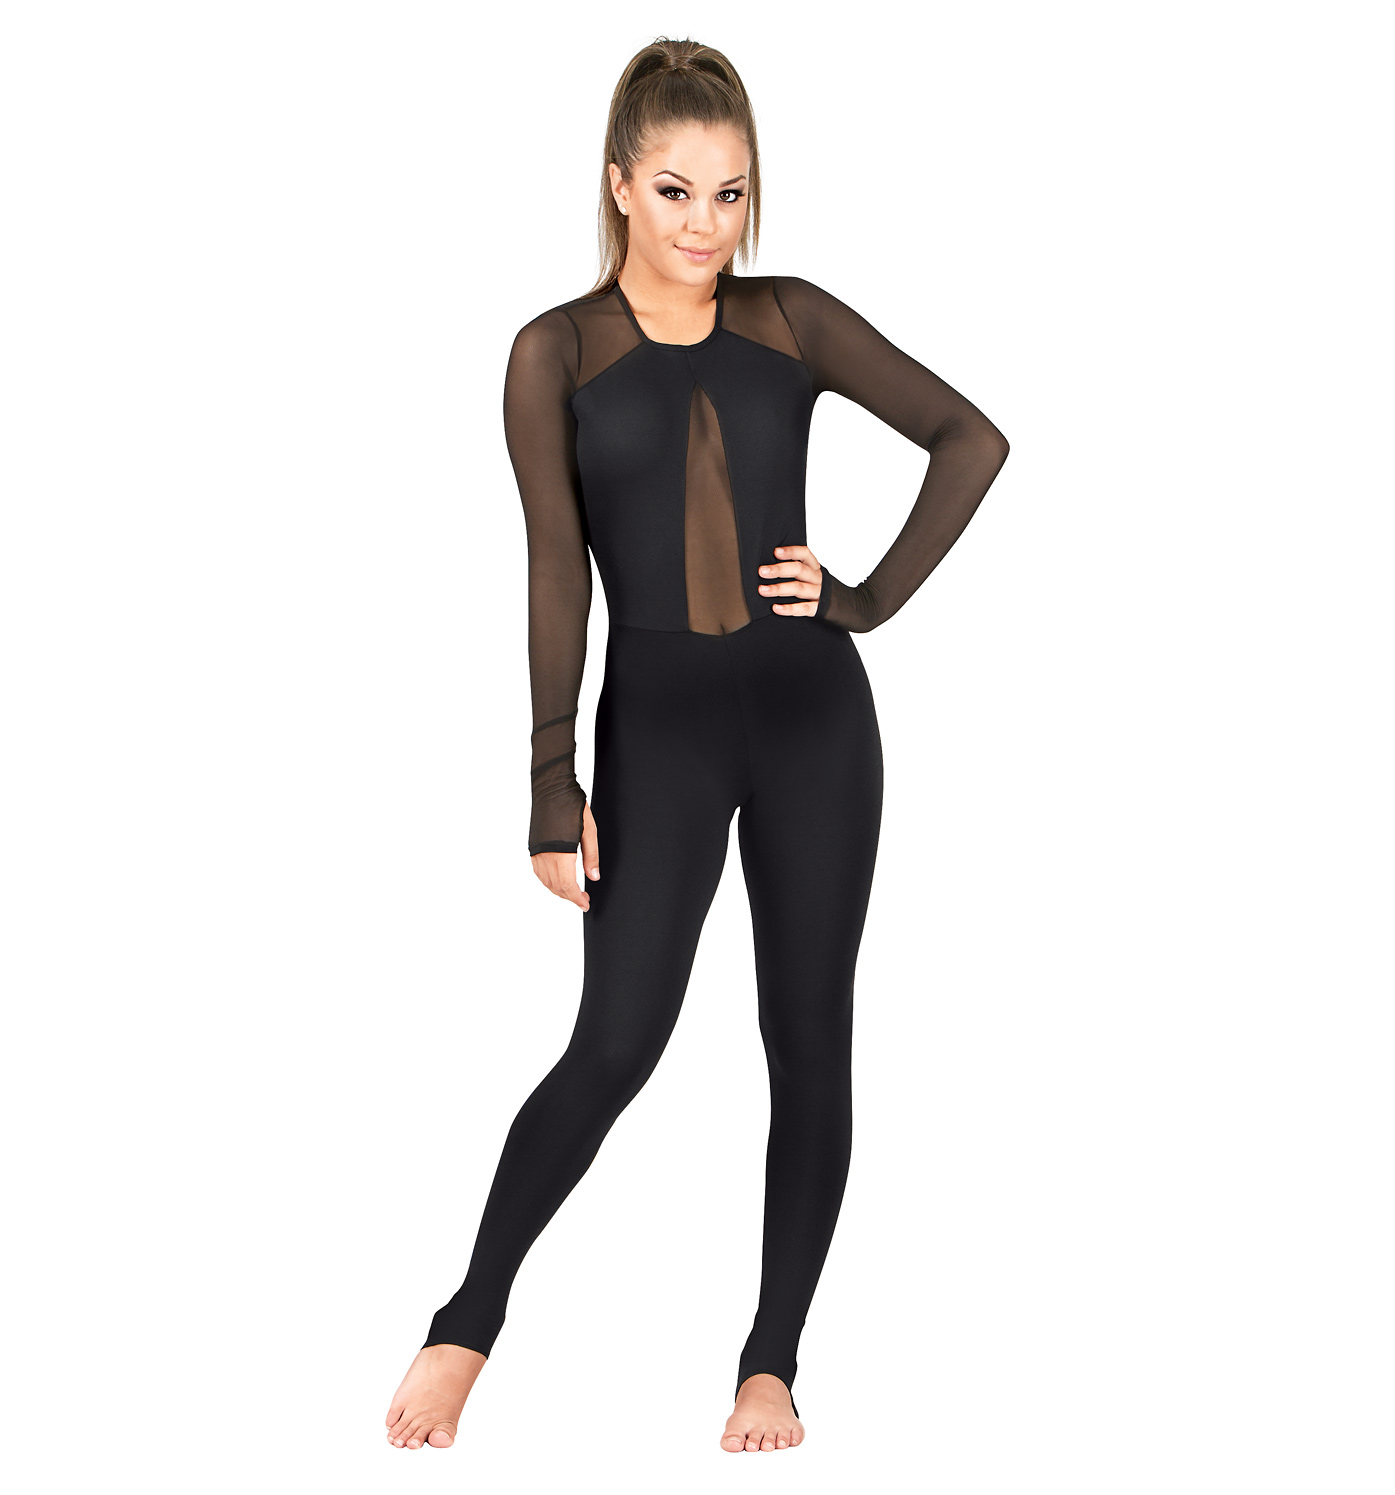 Plunging Powermesh V-Unitard - Unitards | DiscountDance.com